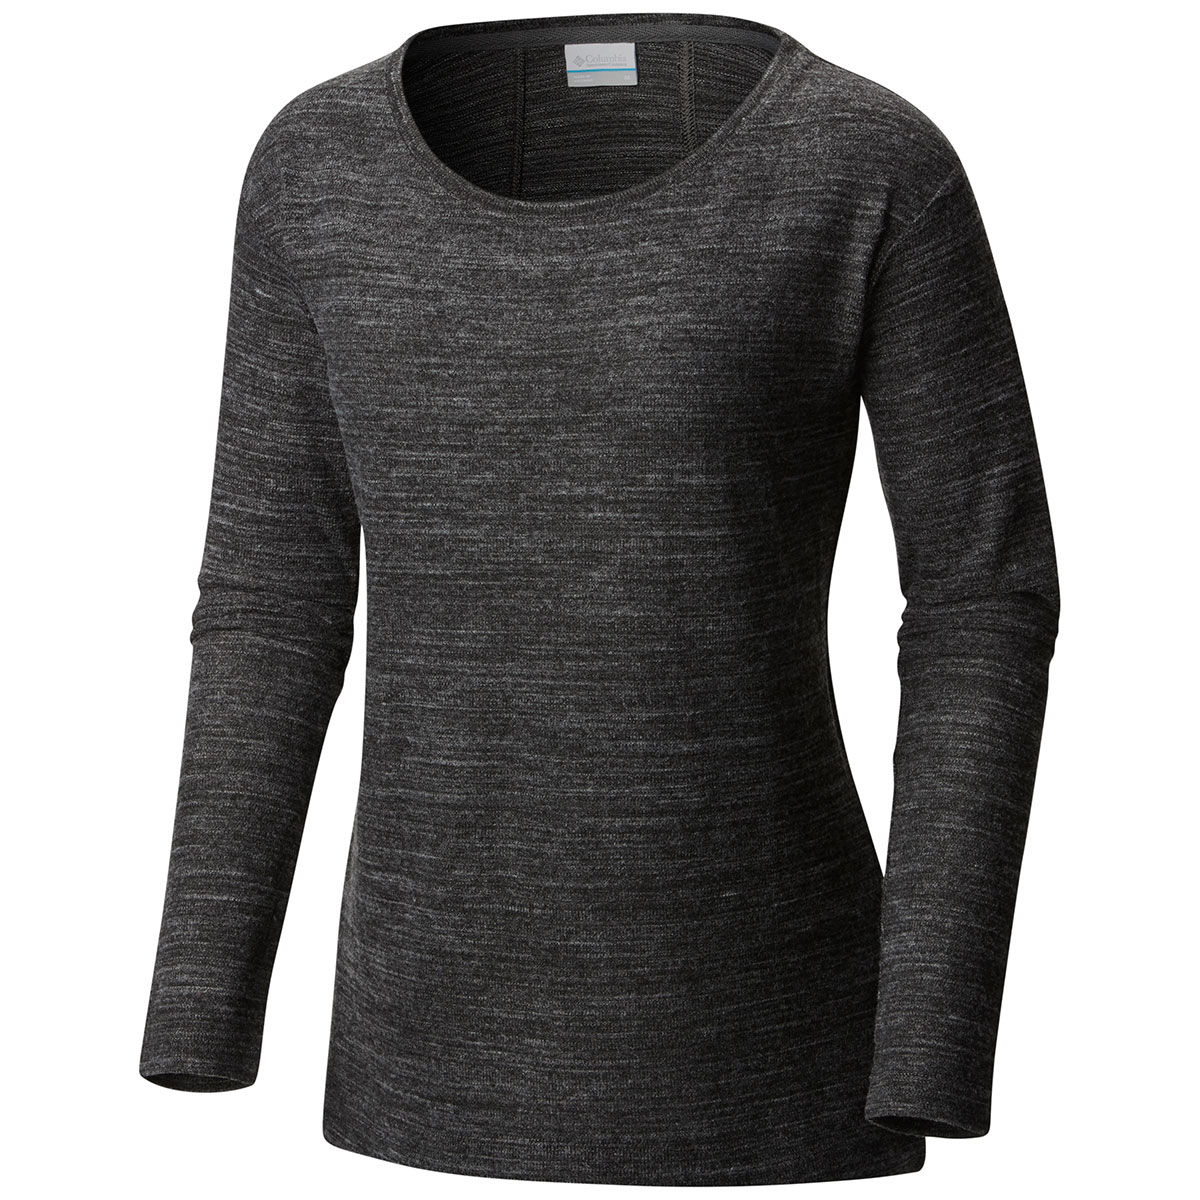 Columbia Women's By The Hearth Sweater - Black, M